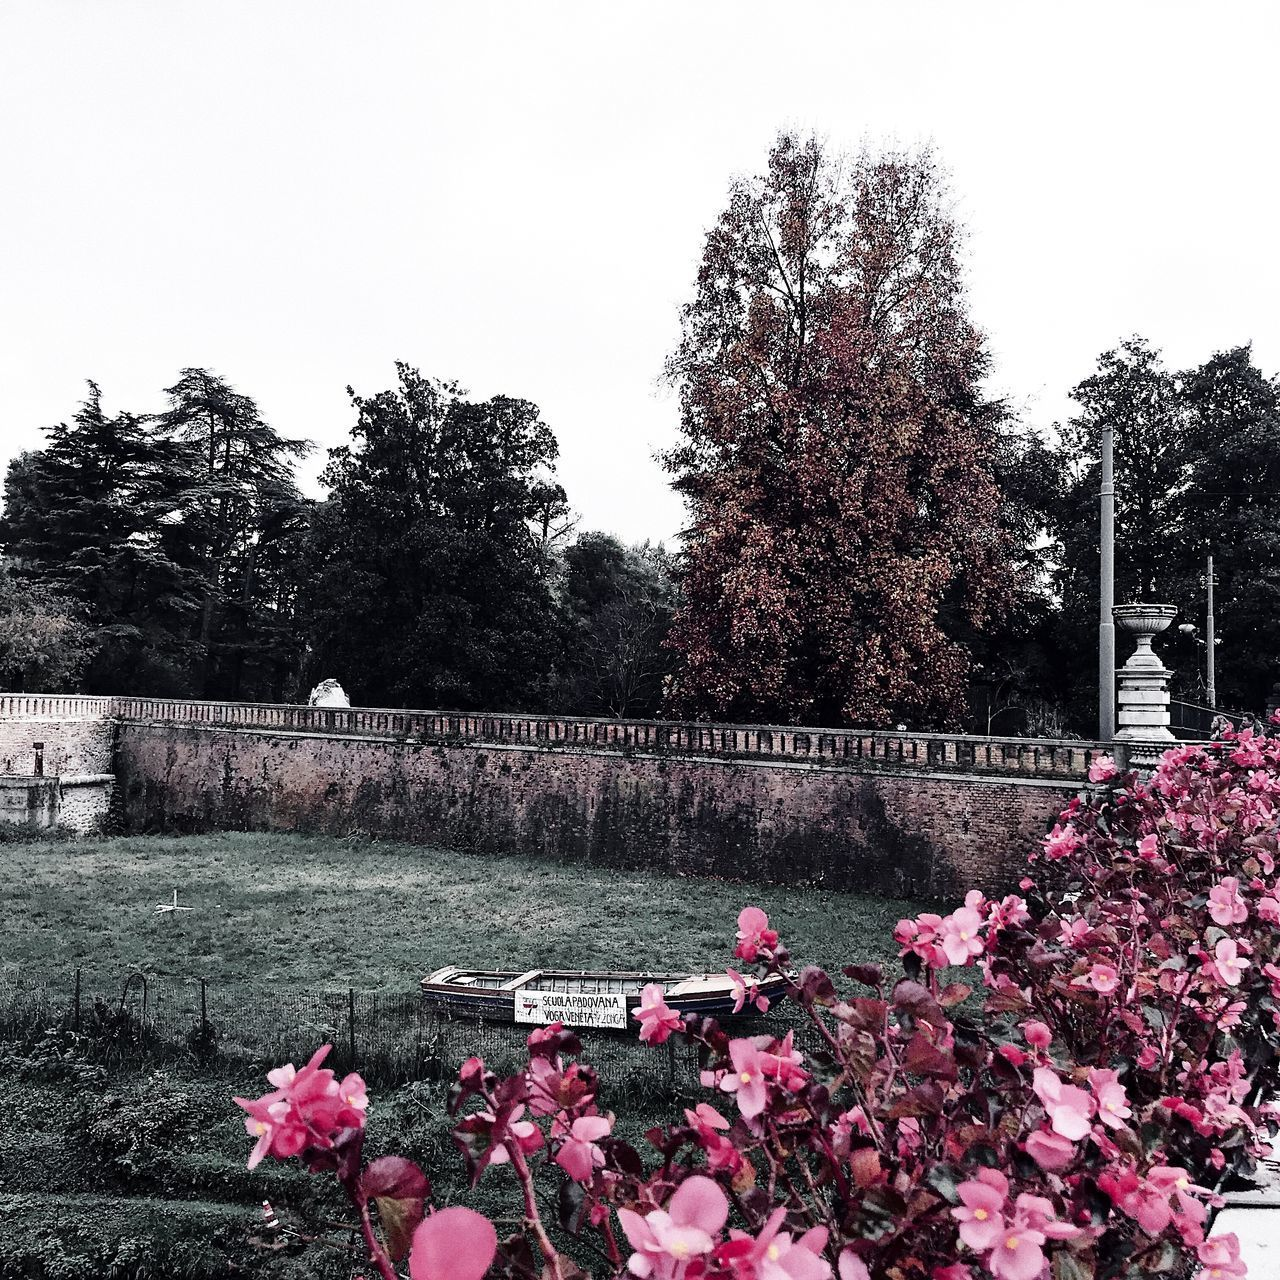 plant, flower, flowering plant, tree, growth, sky, nature, beauty in nature, freshness, pink color, clear sky, day, fragility, vulnerability, architecture, no people, outdoors, cemetery, built structure, park